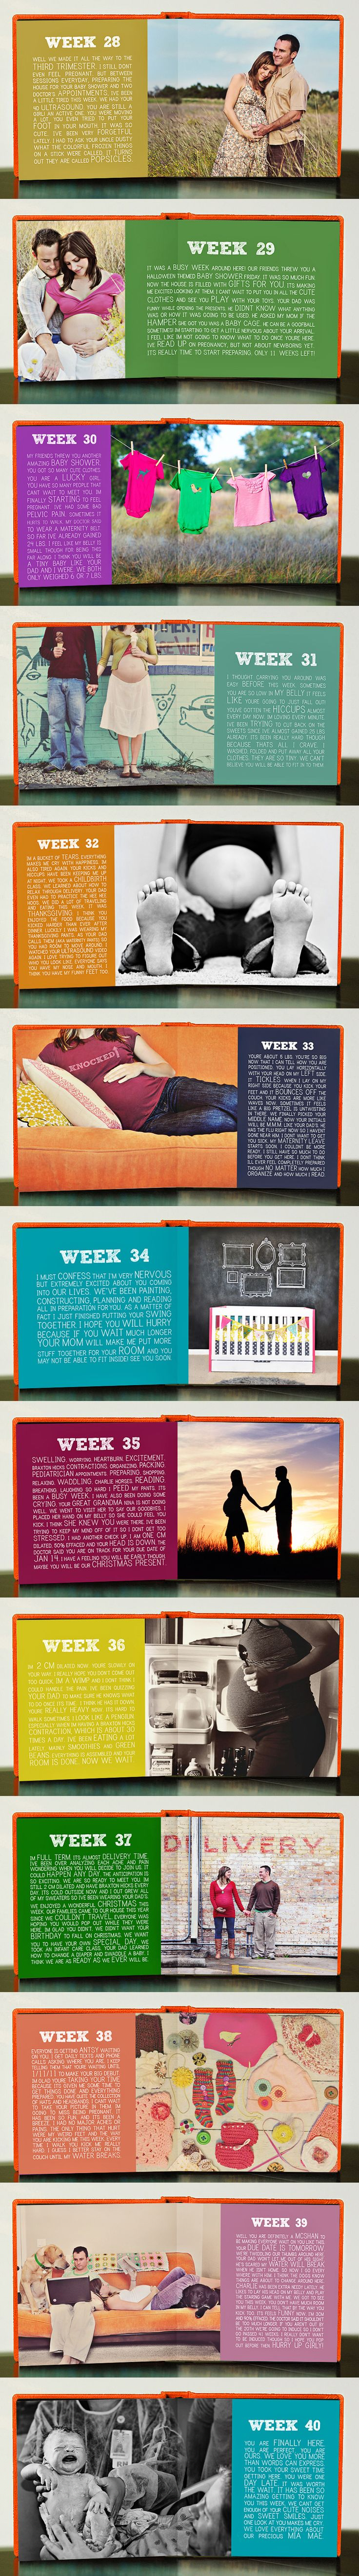 Week by week maternity photo book. This is a creative idea.